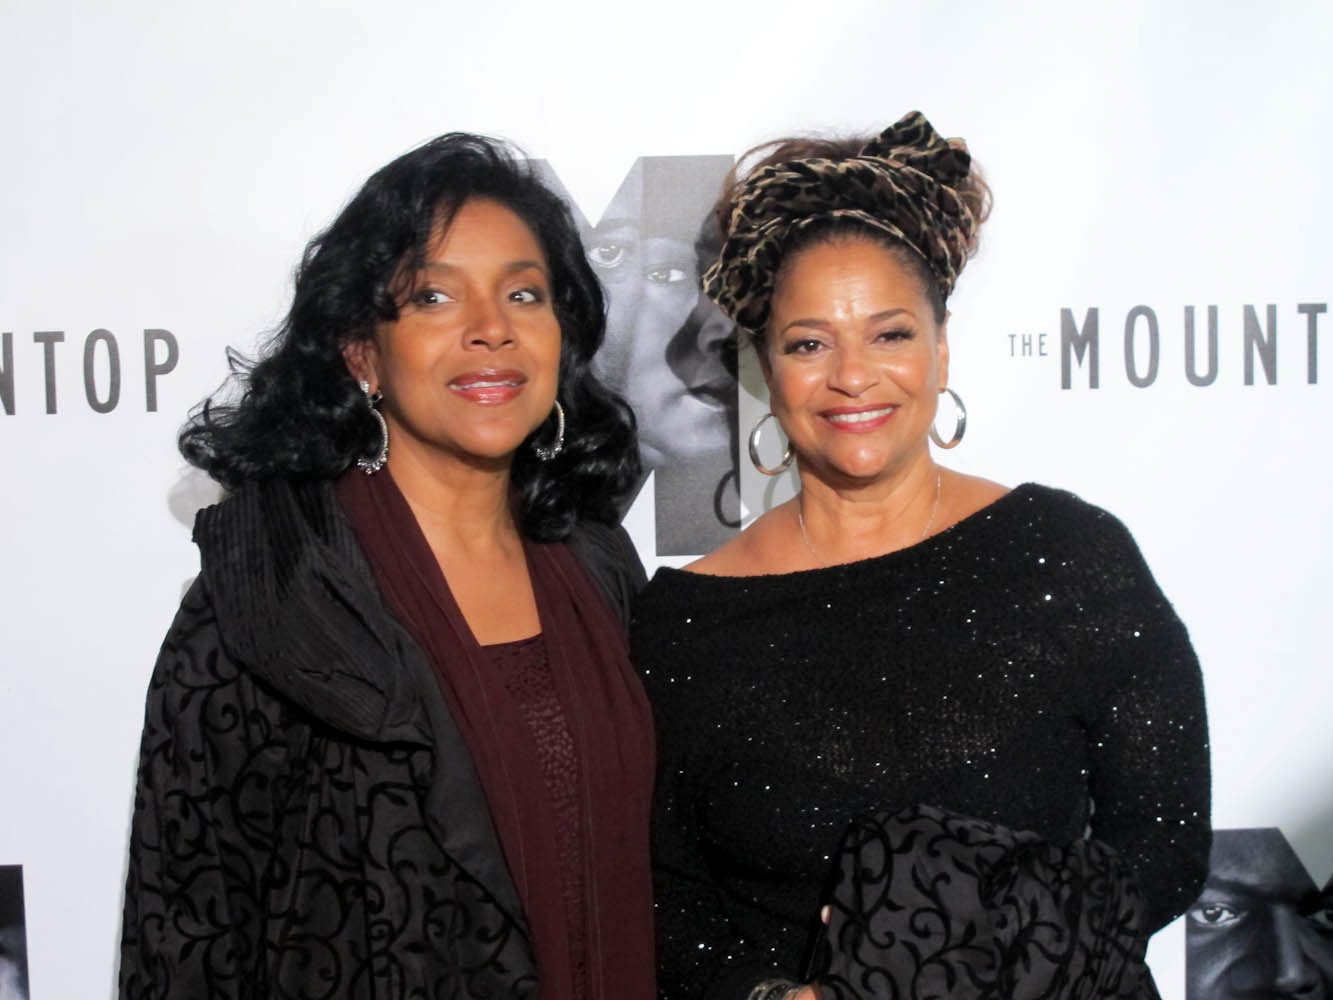 Debbie Allen related to phylicia rashad